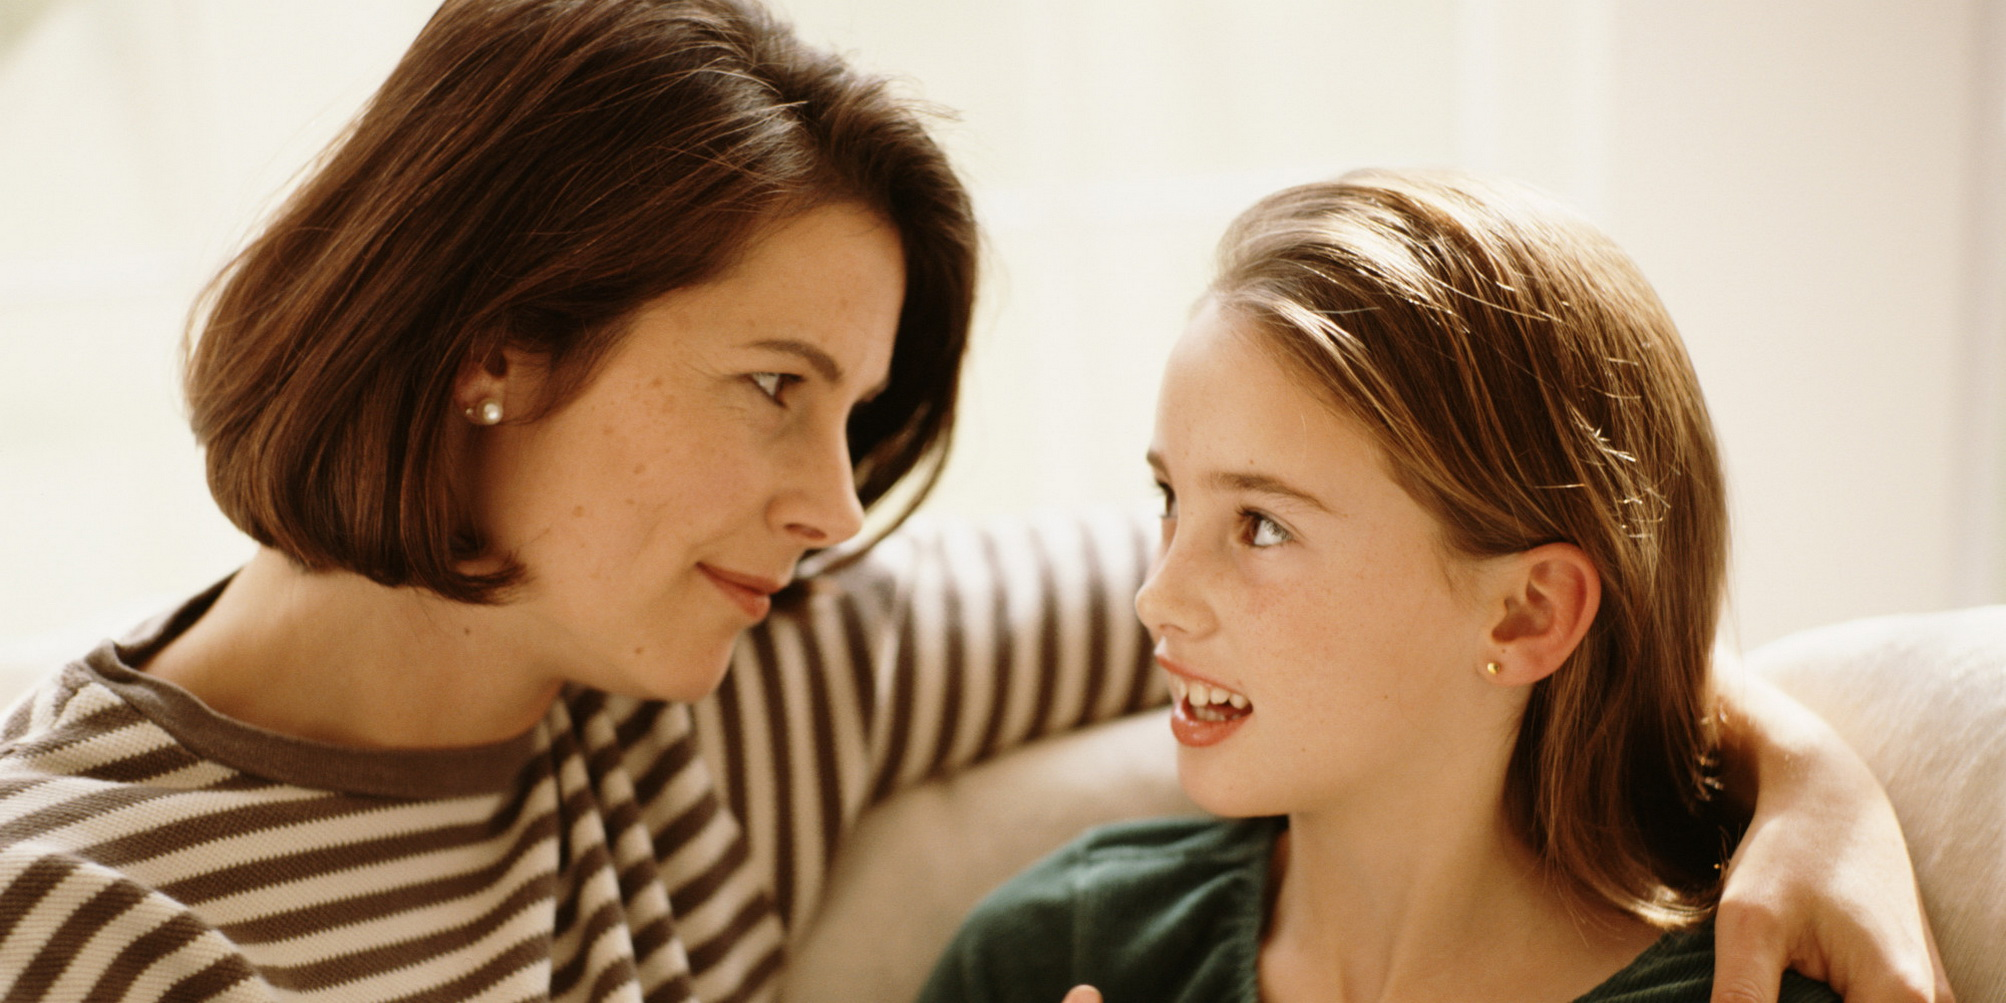 daughter-mom-talking-2_resize